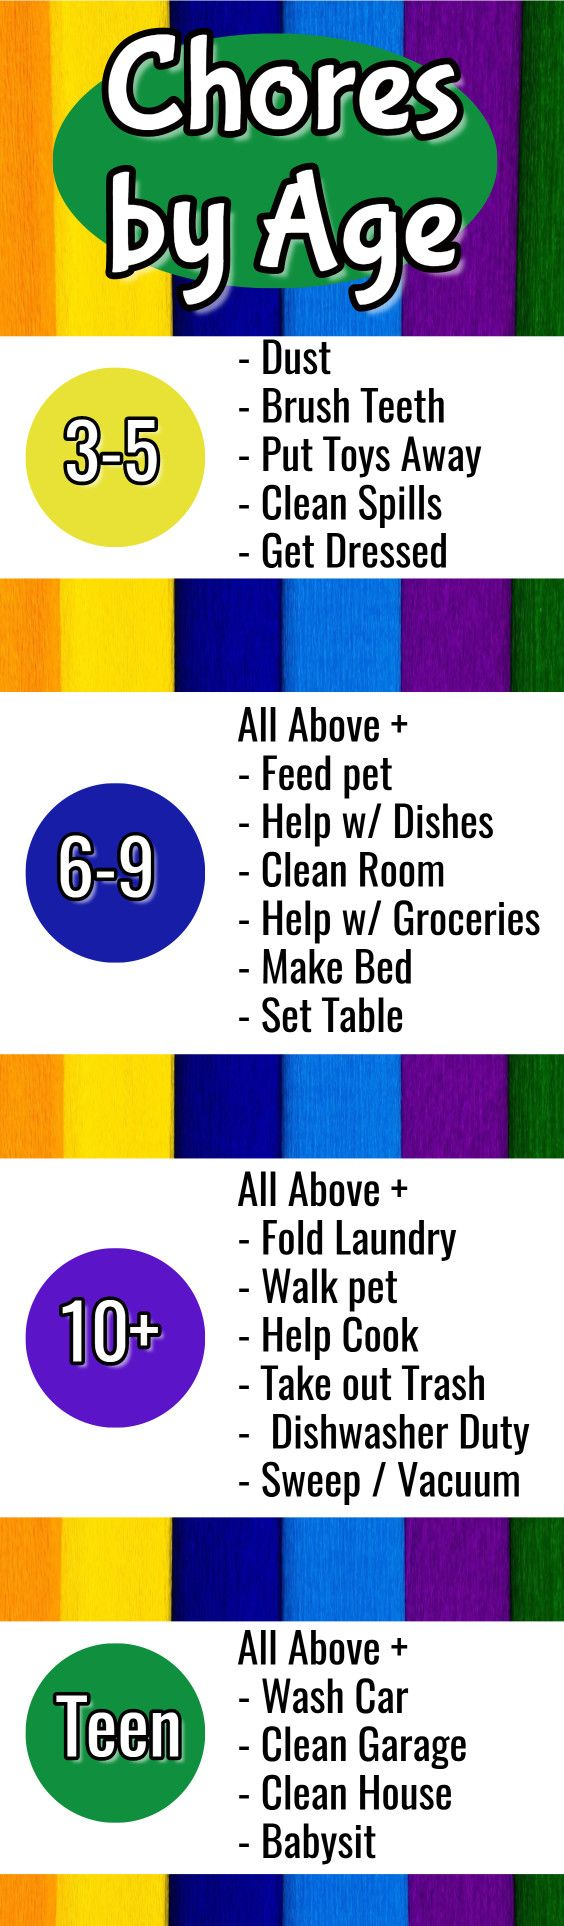 When making a chore chart for your child, it's important to know what chores kids can do by age.  This checklist helps you figure out what chores to put on your chore charts for your family.